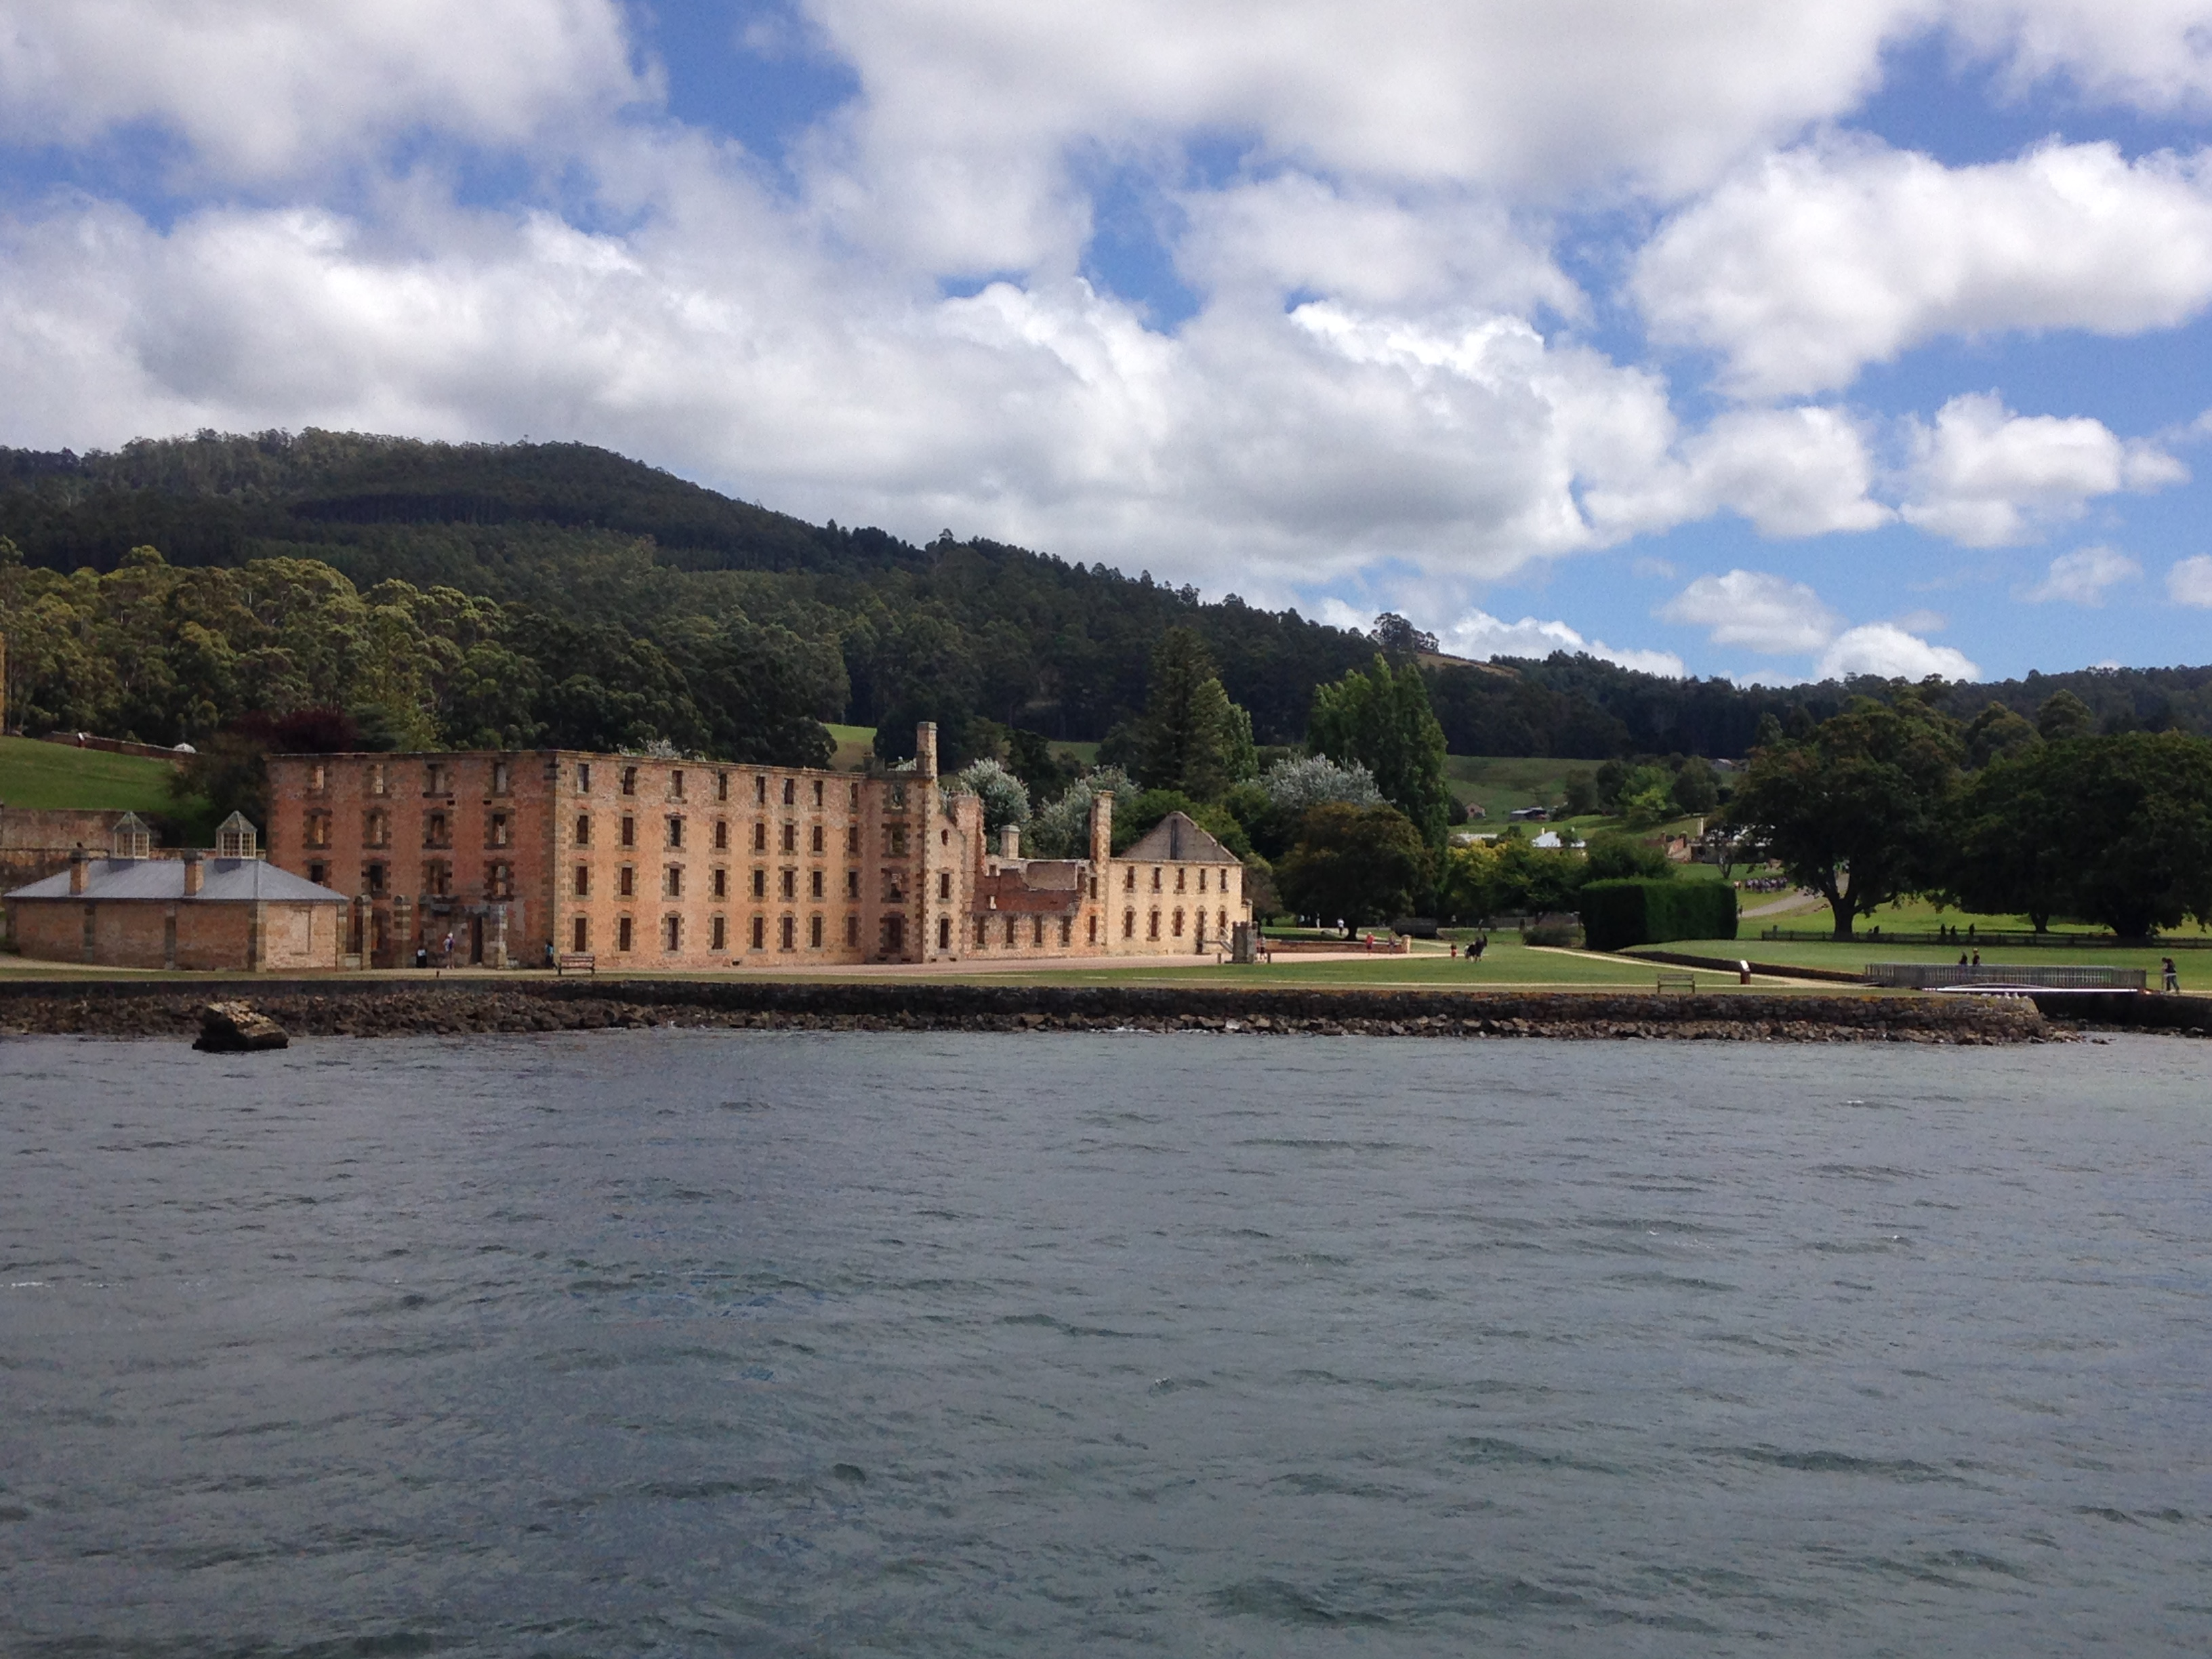 port arthur bay.JPG